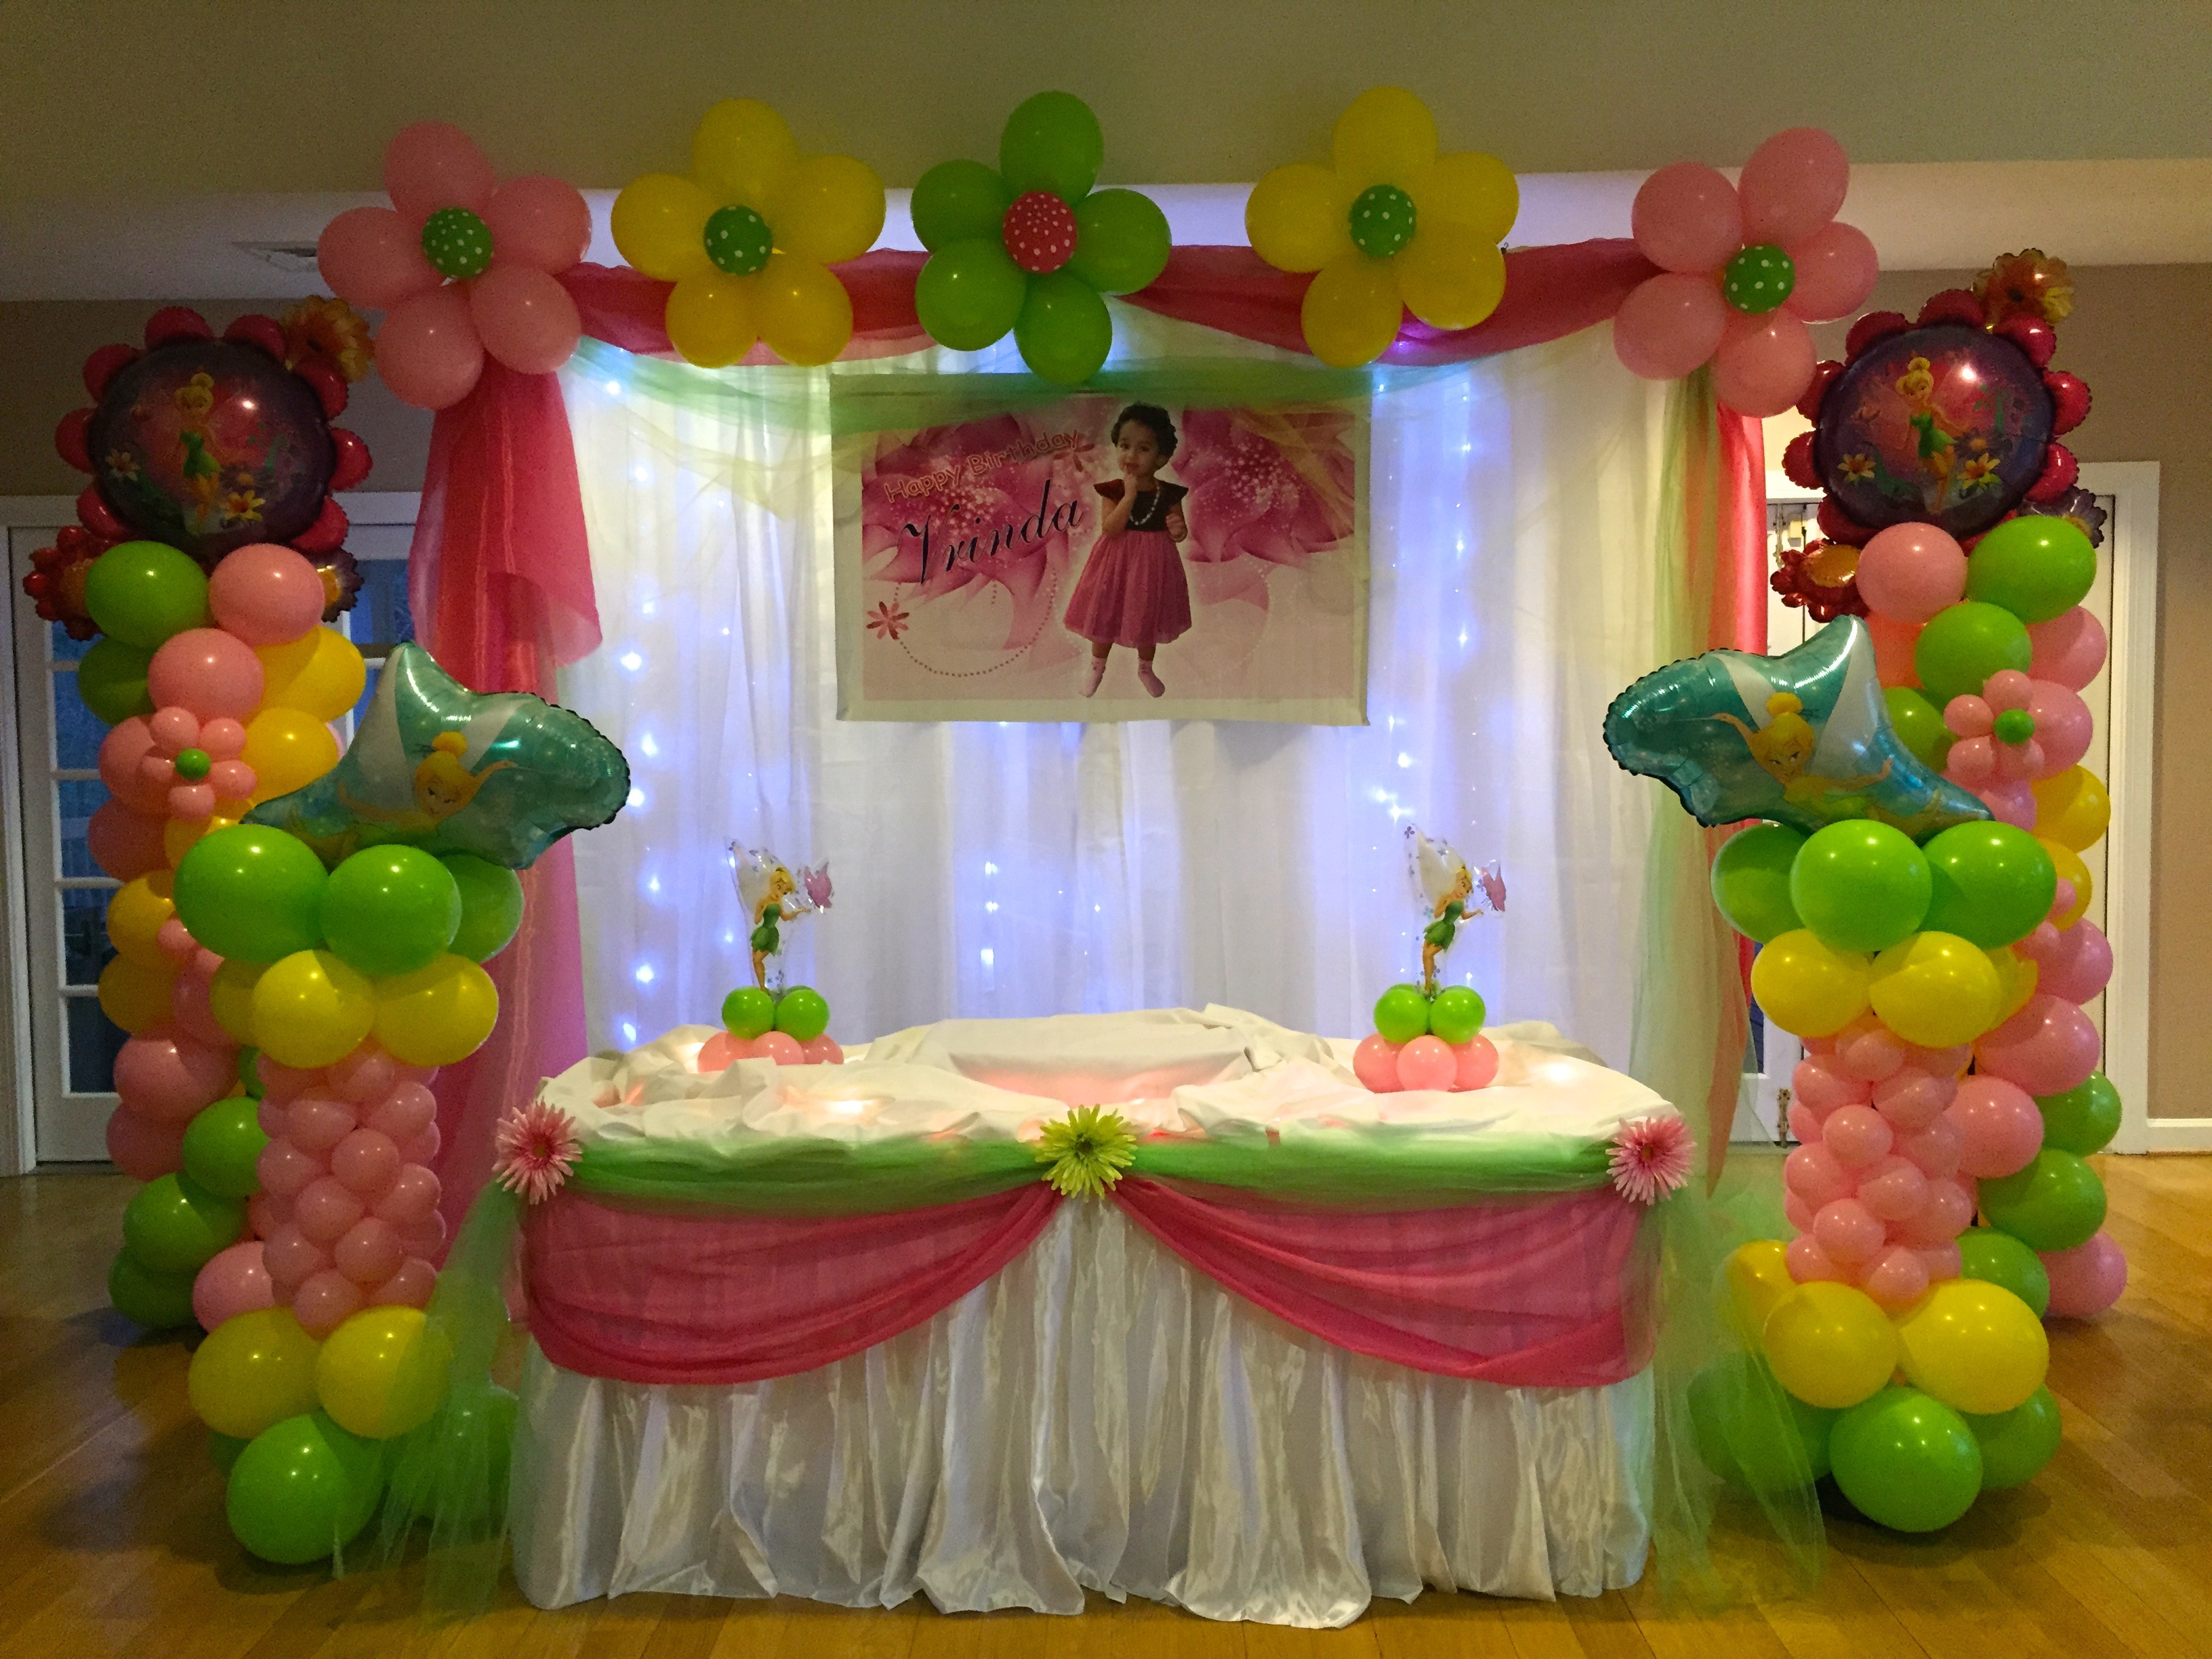 dfa tinkerbell balloon decor backdrop